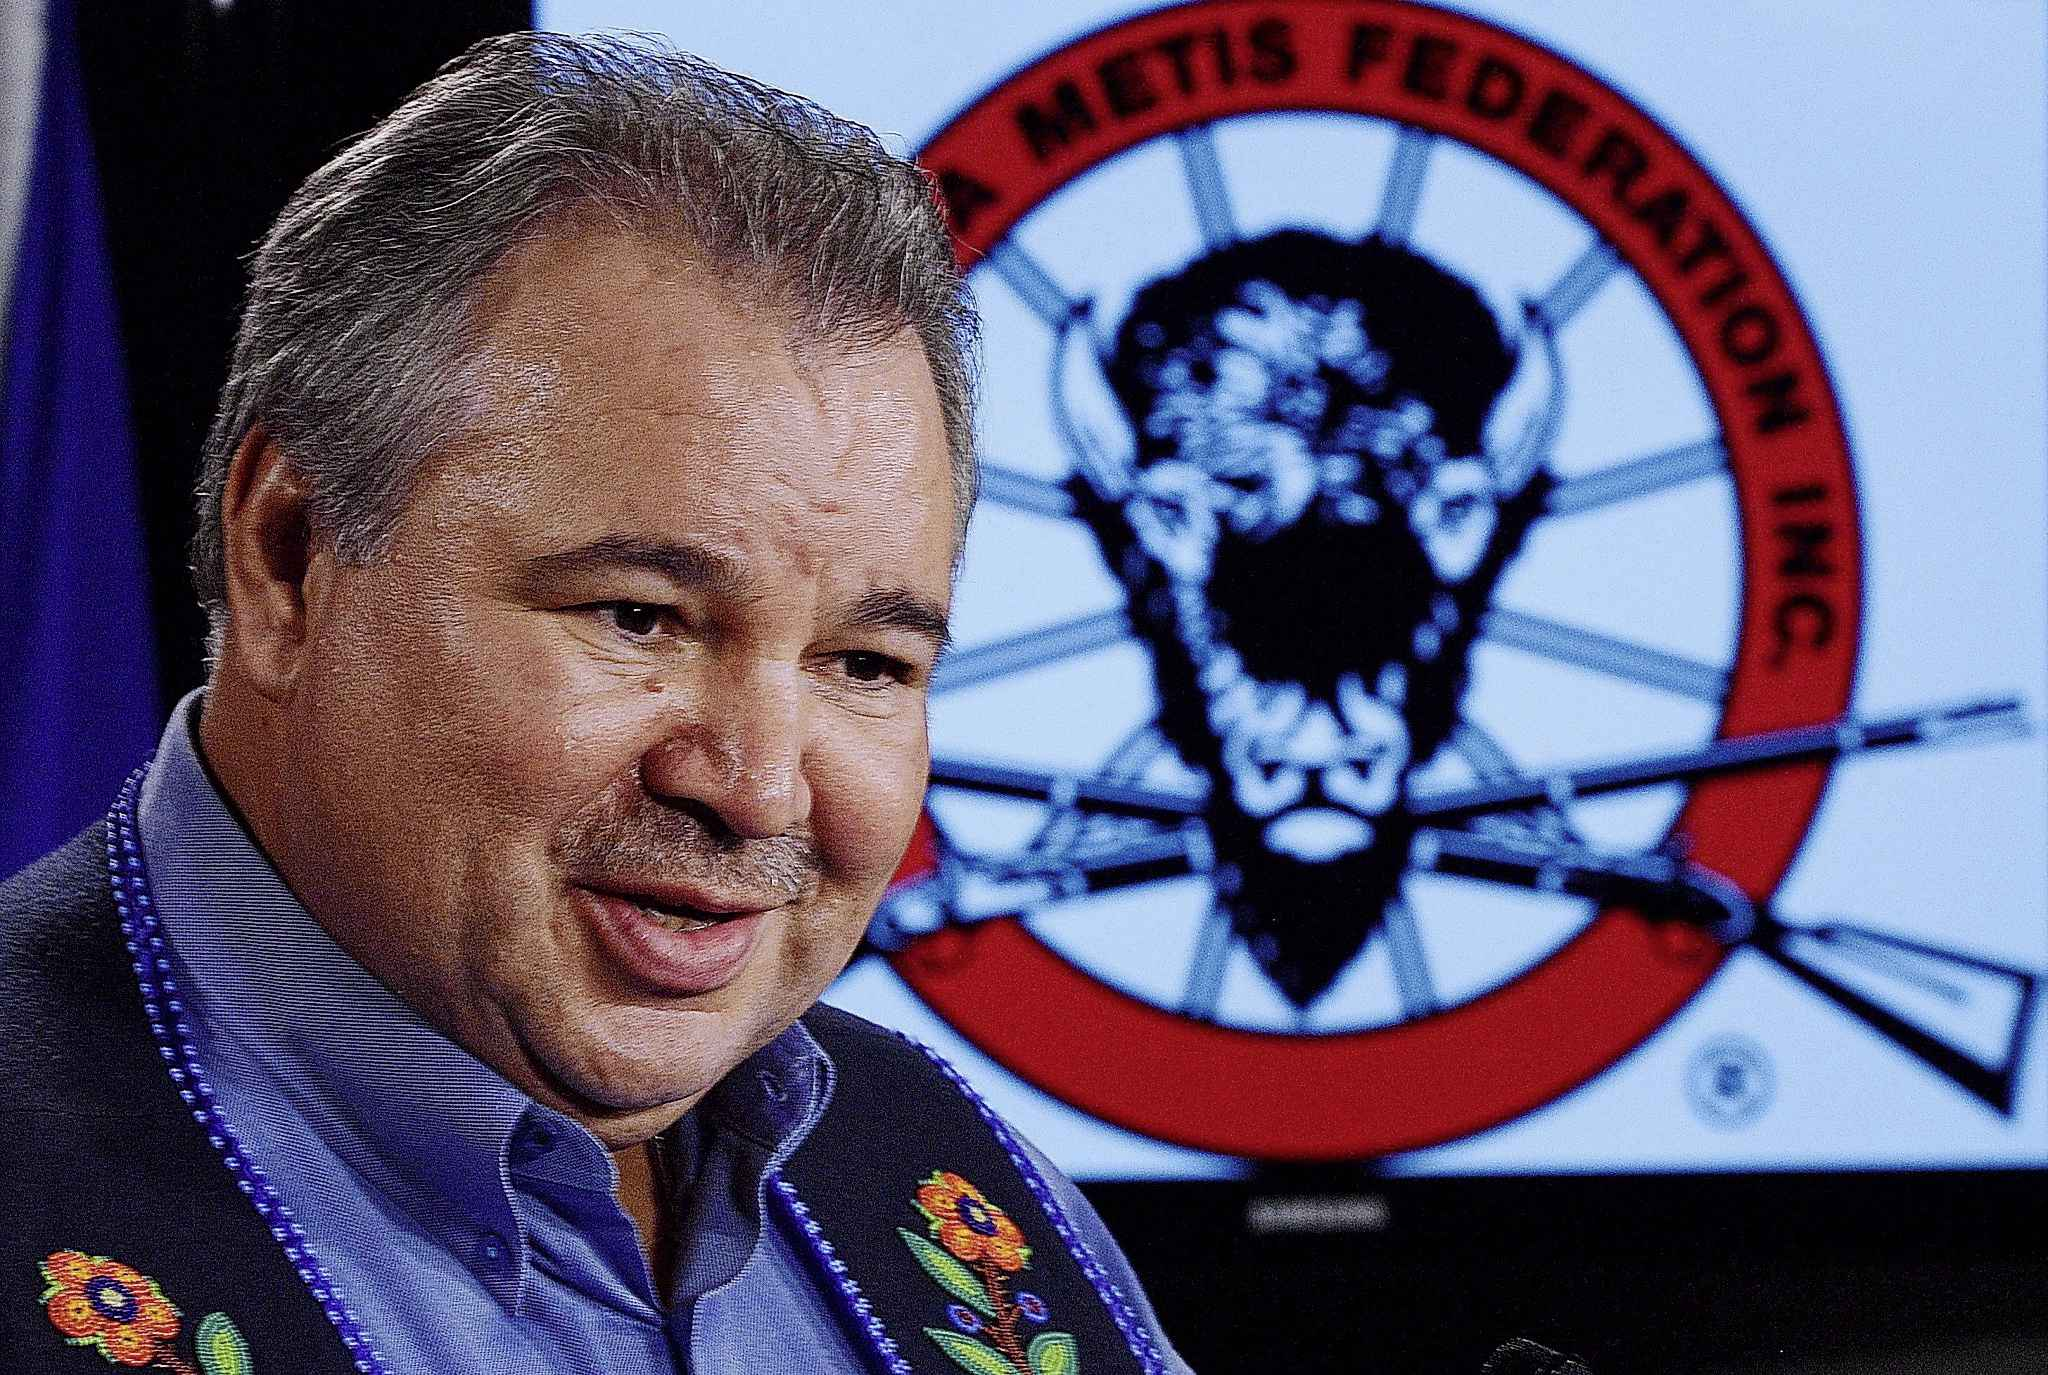 Manitoba Metis Federation president David Chartrand is misstating a 2013 Supreme Court ruling to give credence to a claim over Kapyong Barracks that lacks merit, Tom Brodbeck writes. (Sean Kilpatrick / The Canadian Press Files)